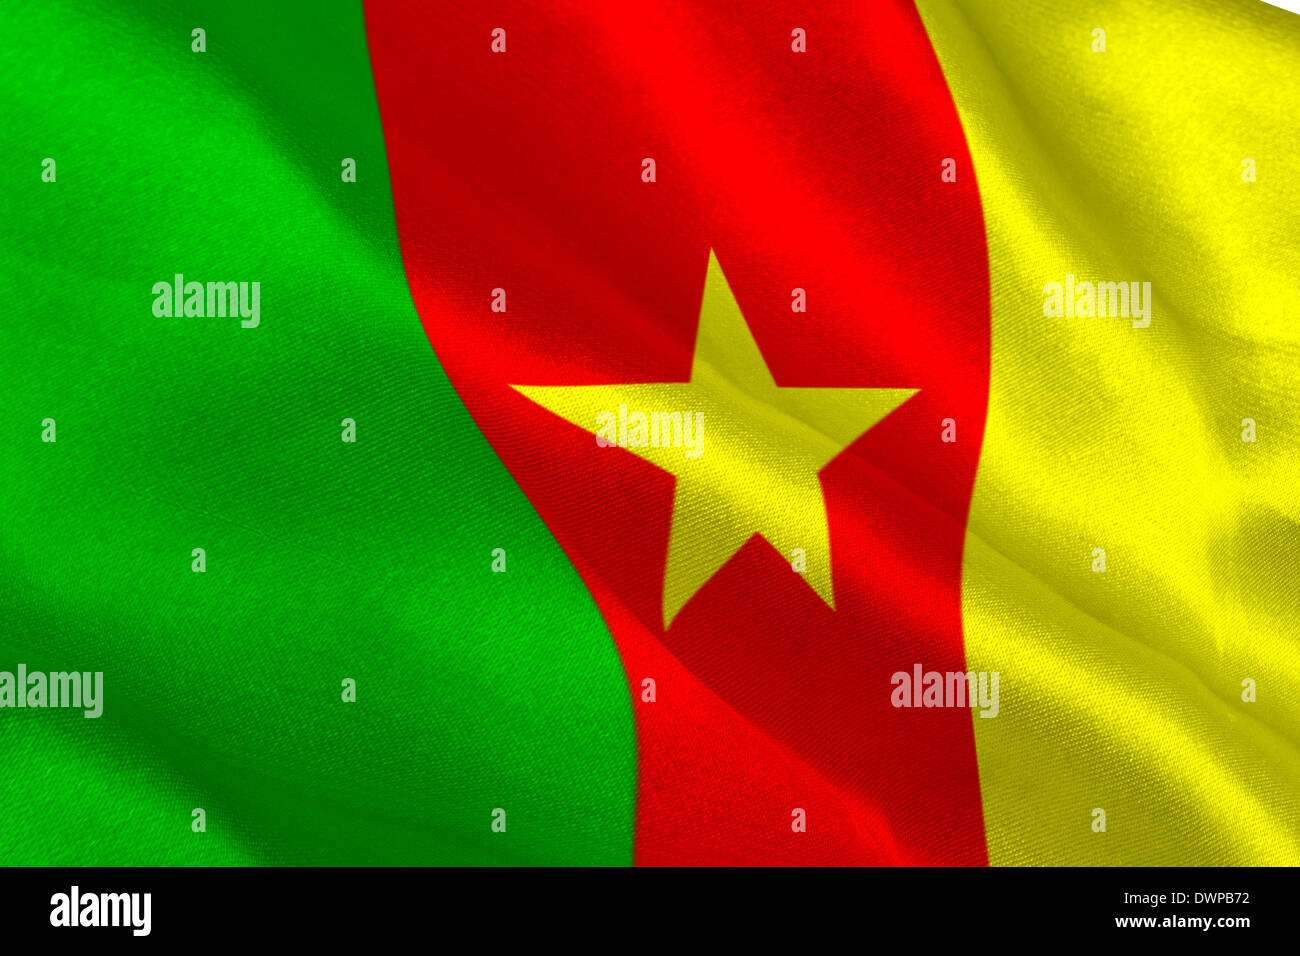 Cameroon flag - Stock Image